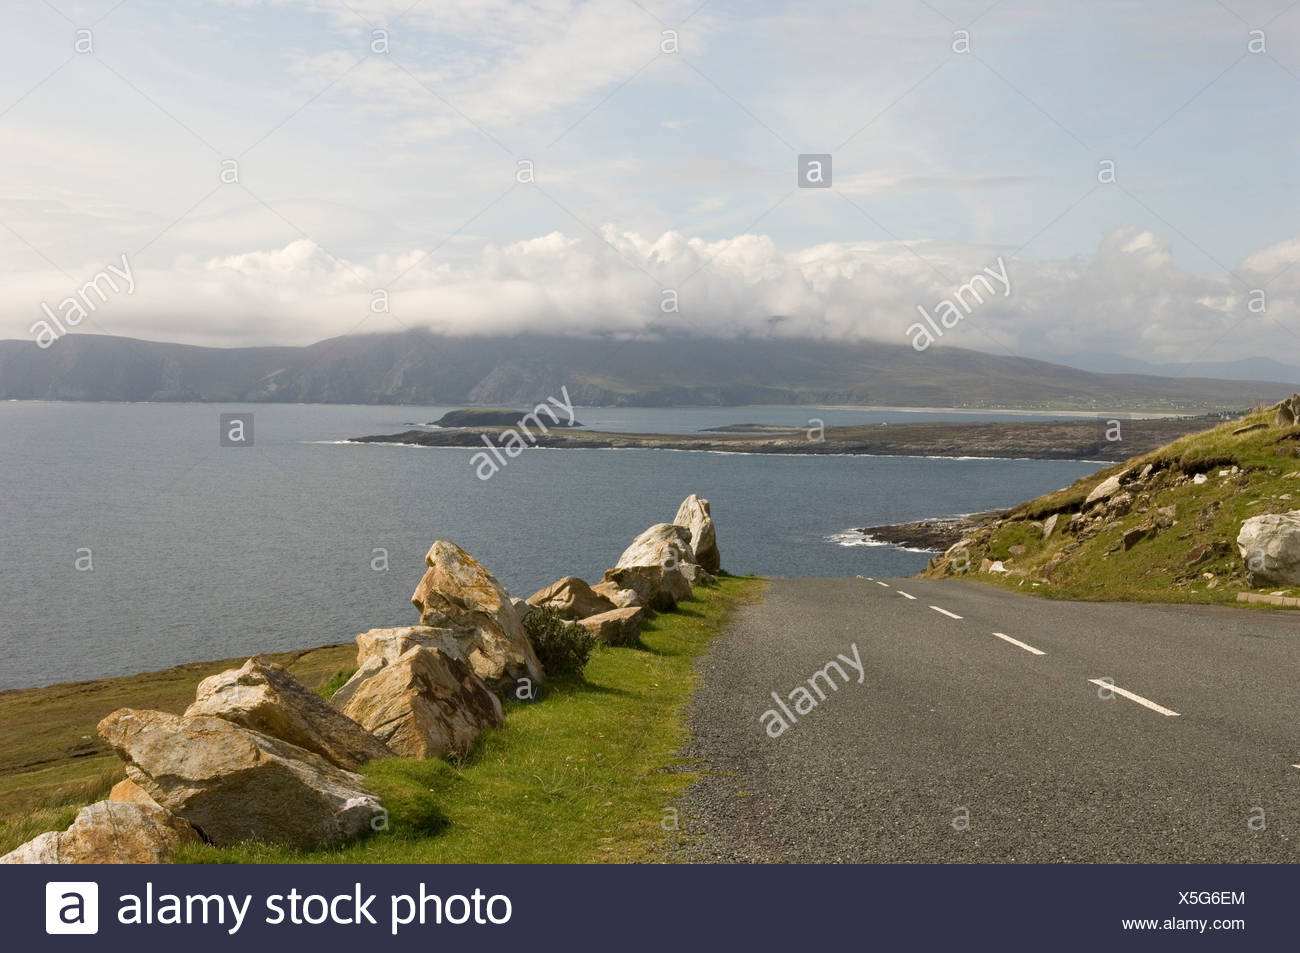 Republic of Ireland, County Mayo, Achill Island, road lined with rocks - Stock Image